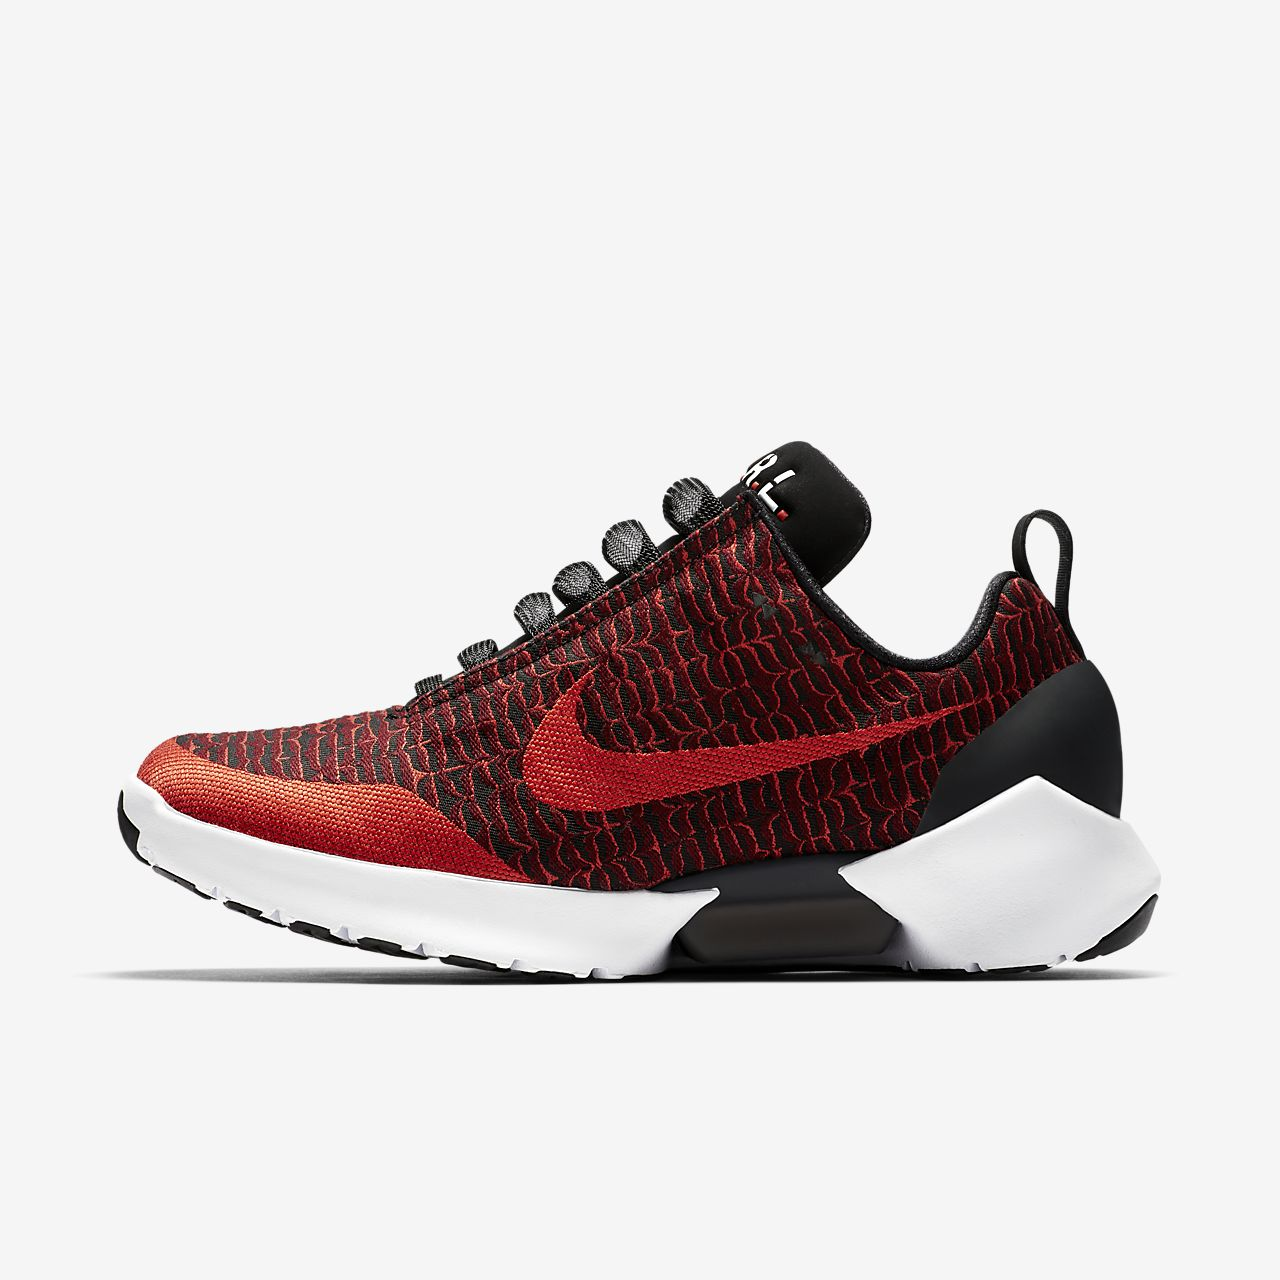 0 1 Gb Hommeprise Pour Chaussure Hyperadapt Nike mNnP80Ovyw